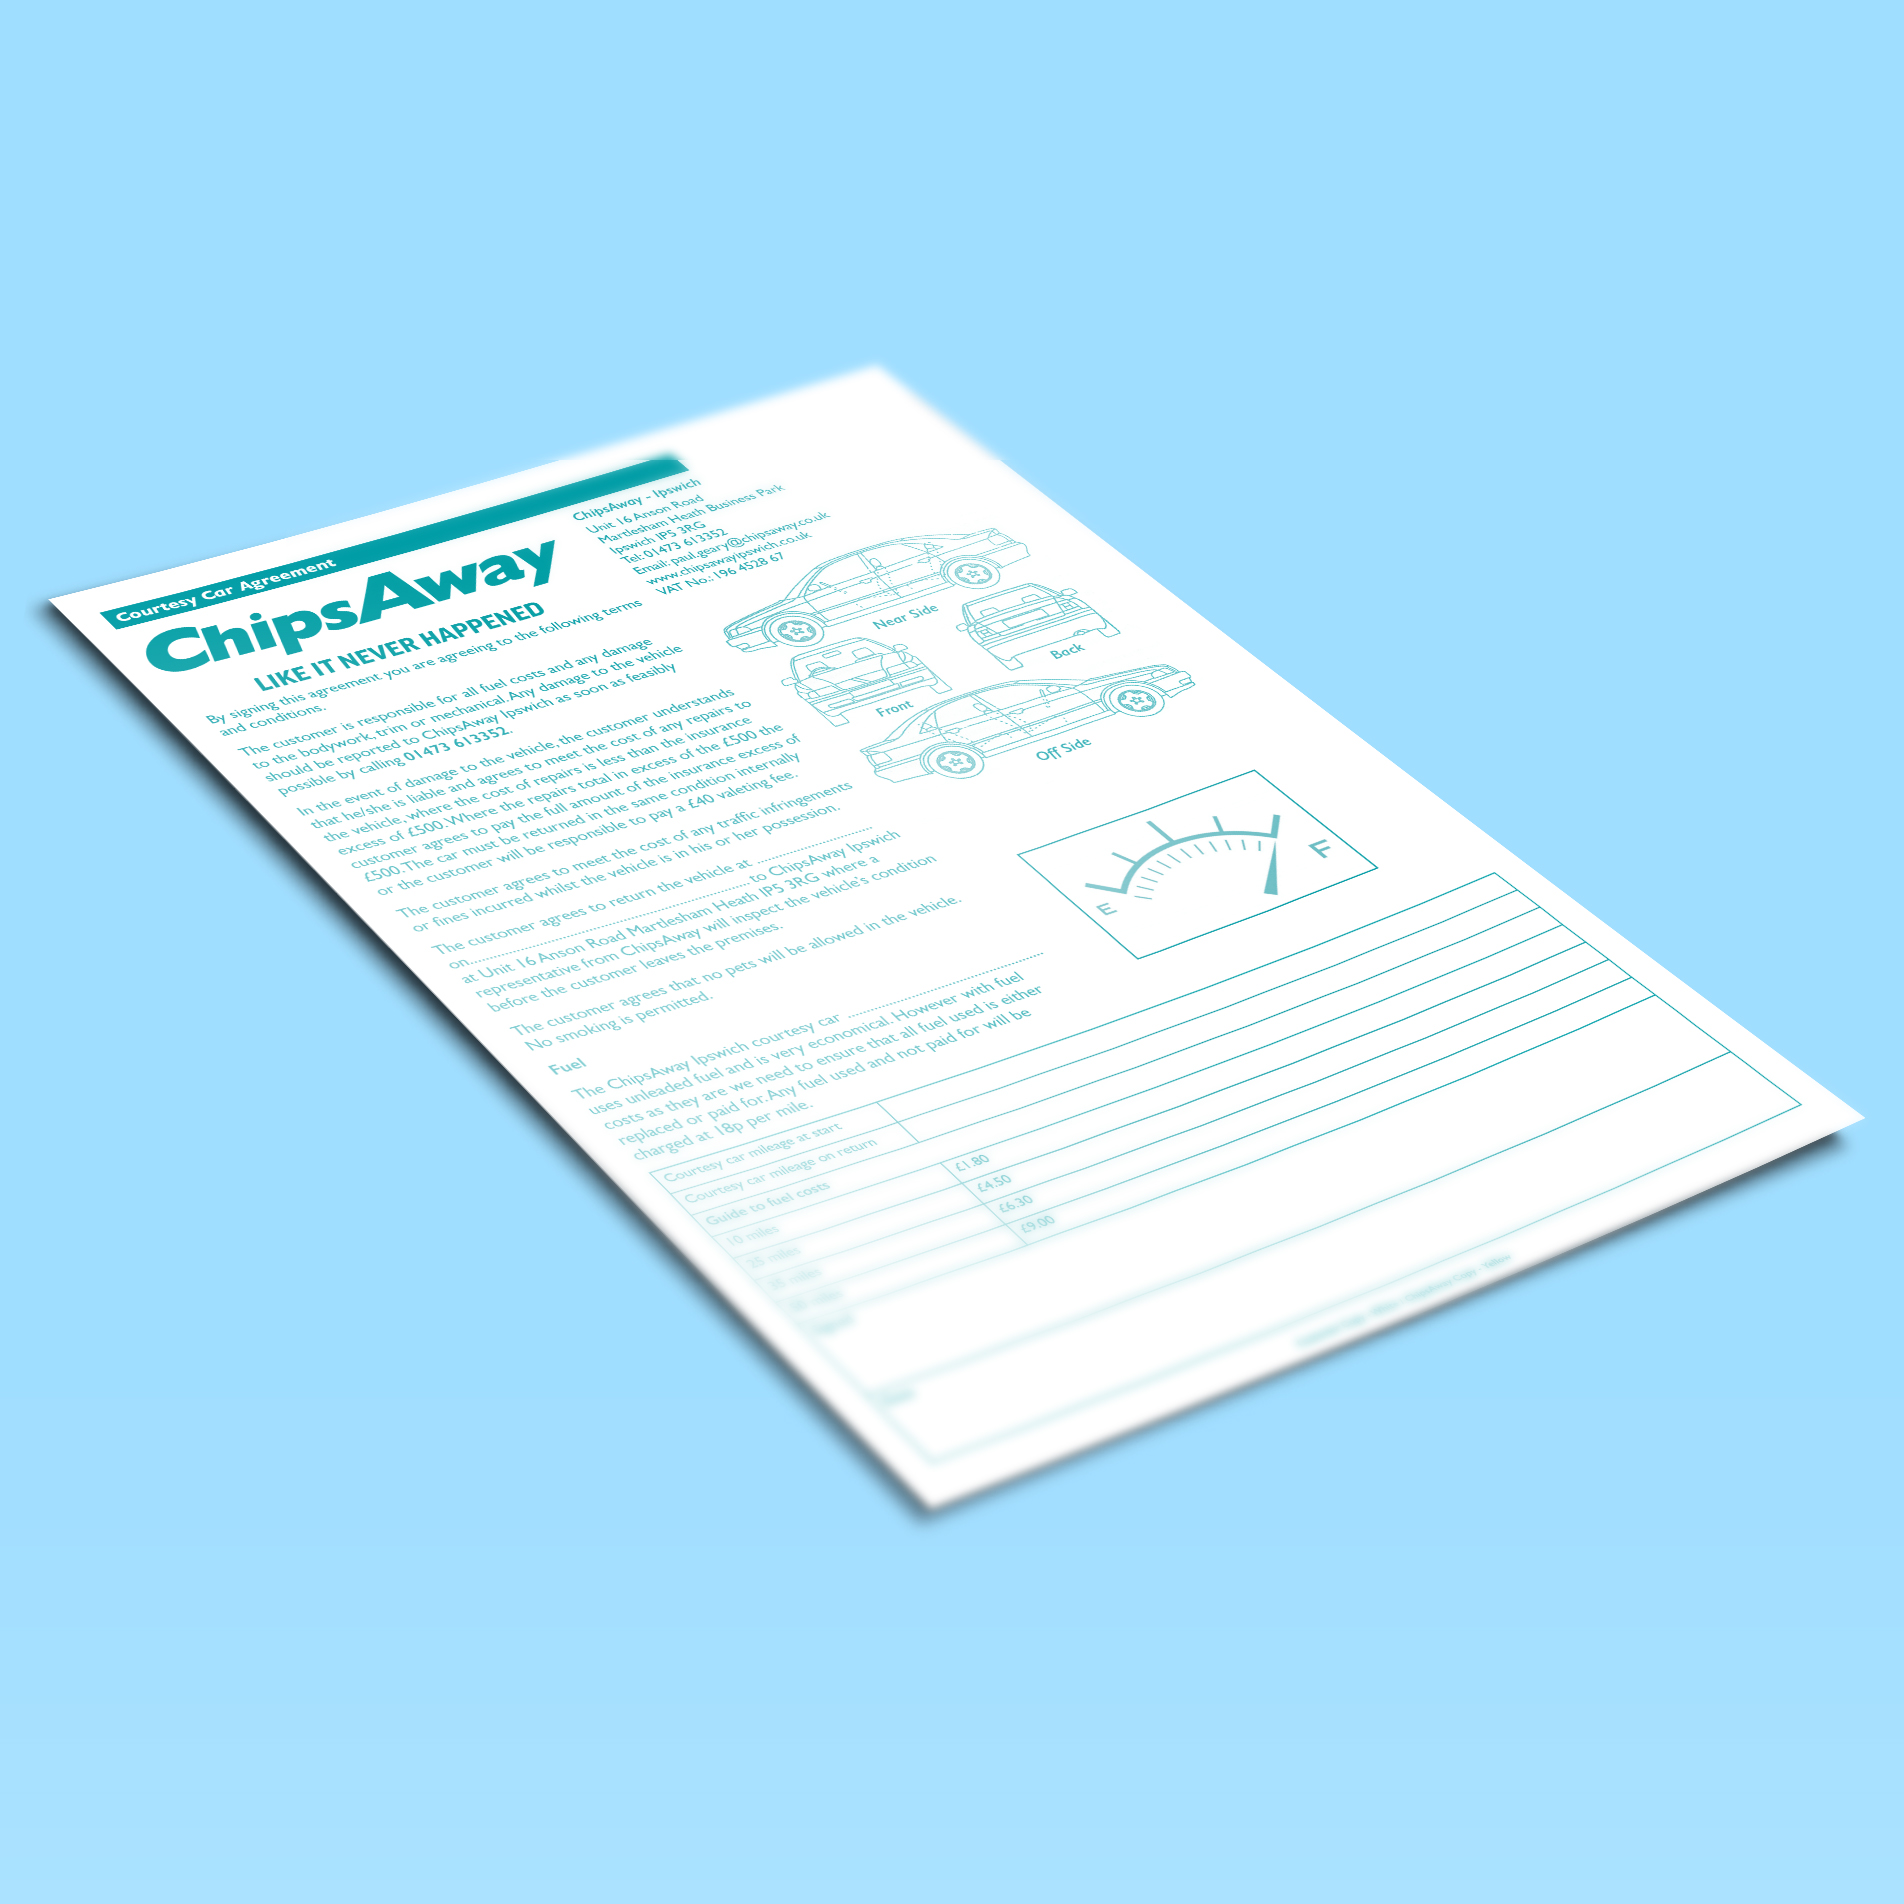 Estimate pads for ChipsAway Ipswich